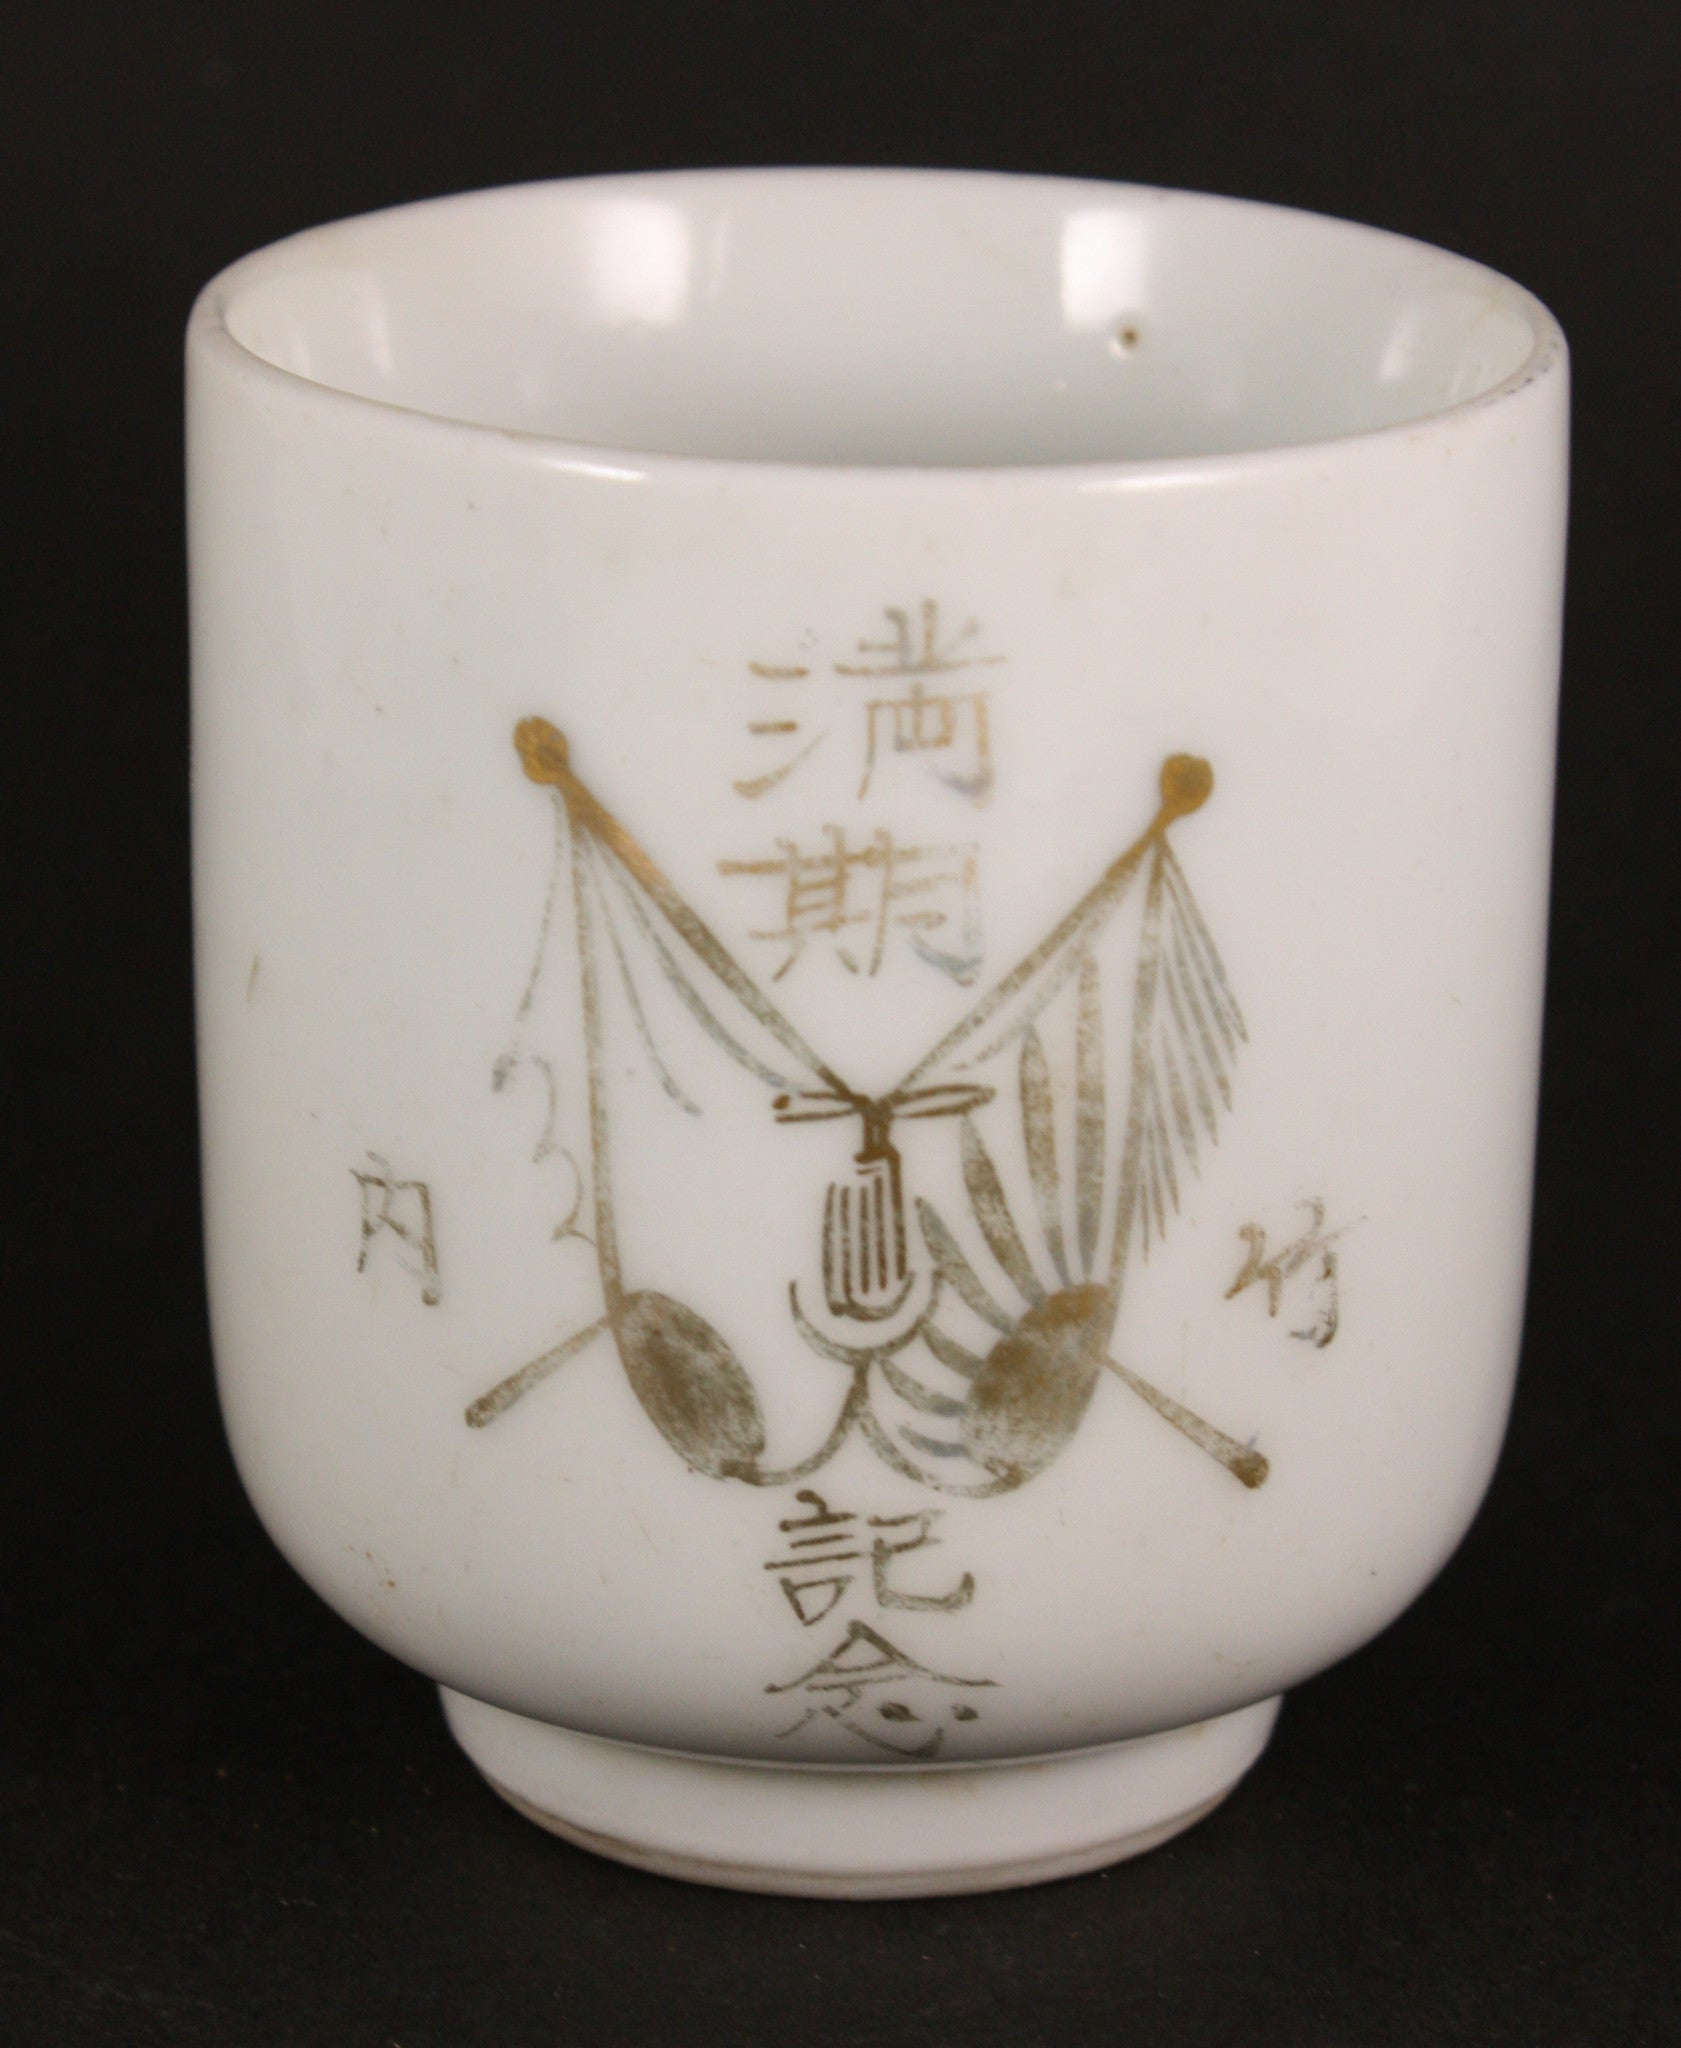 Antique Japanese Military Flags Term Fulfillment Yunomi Tea Cup